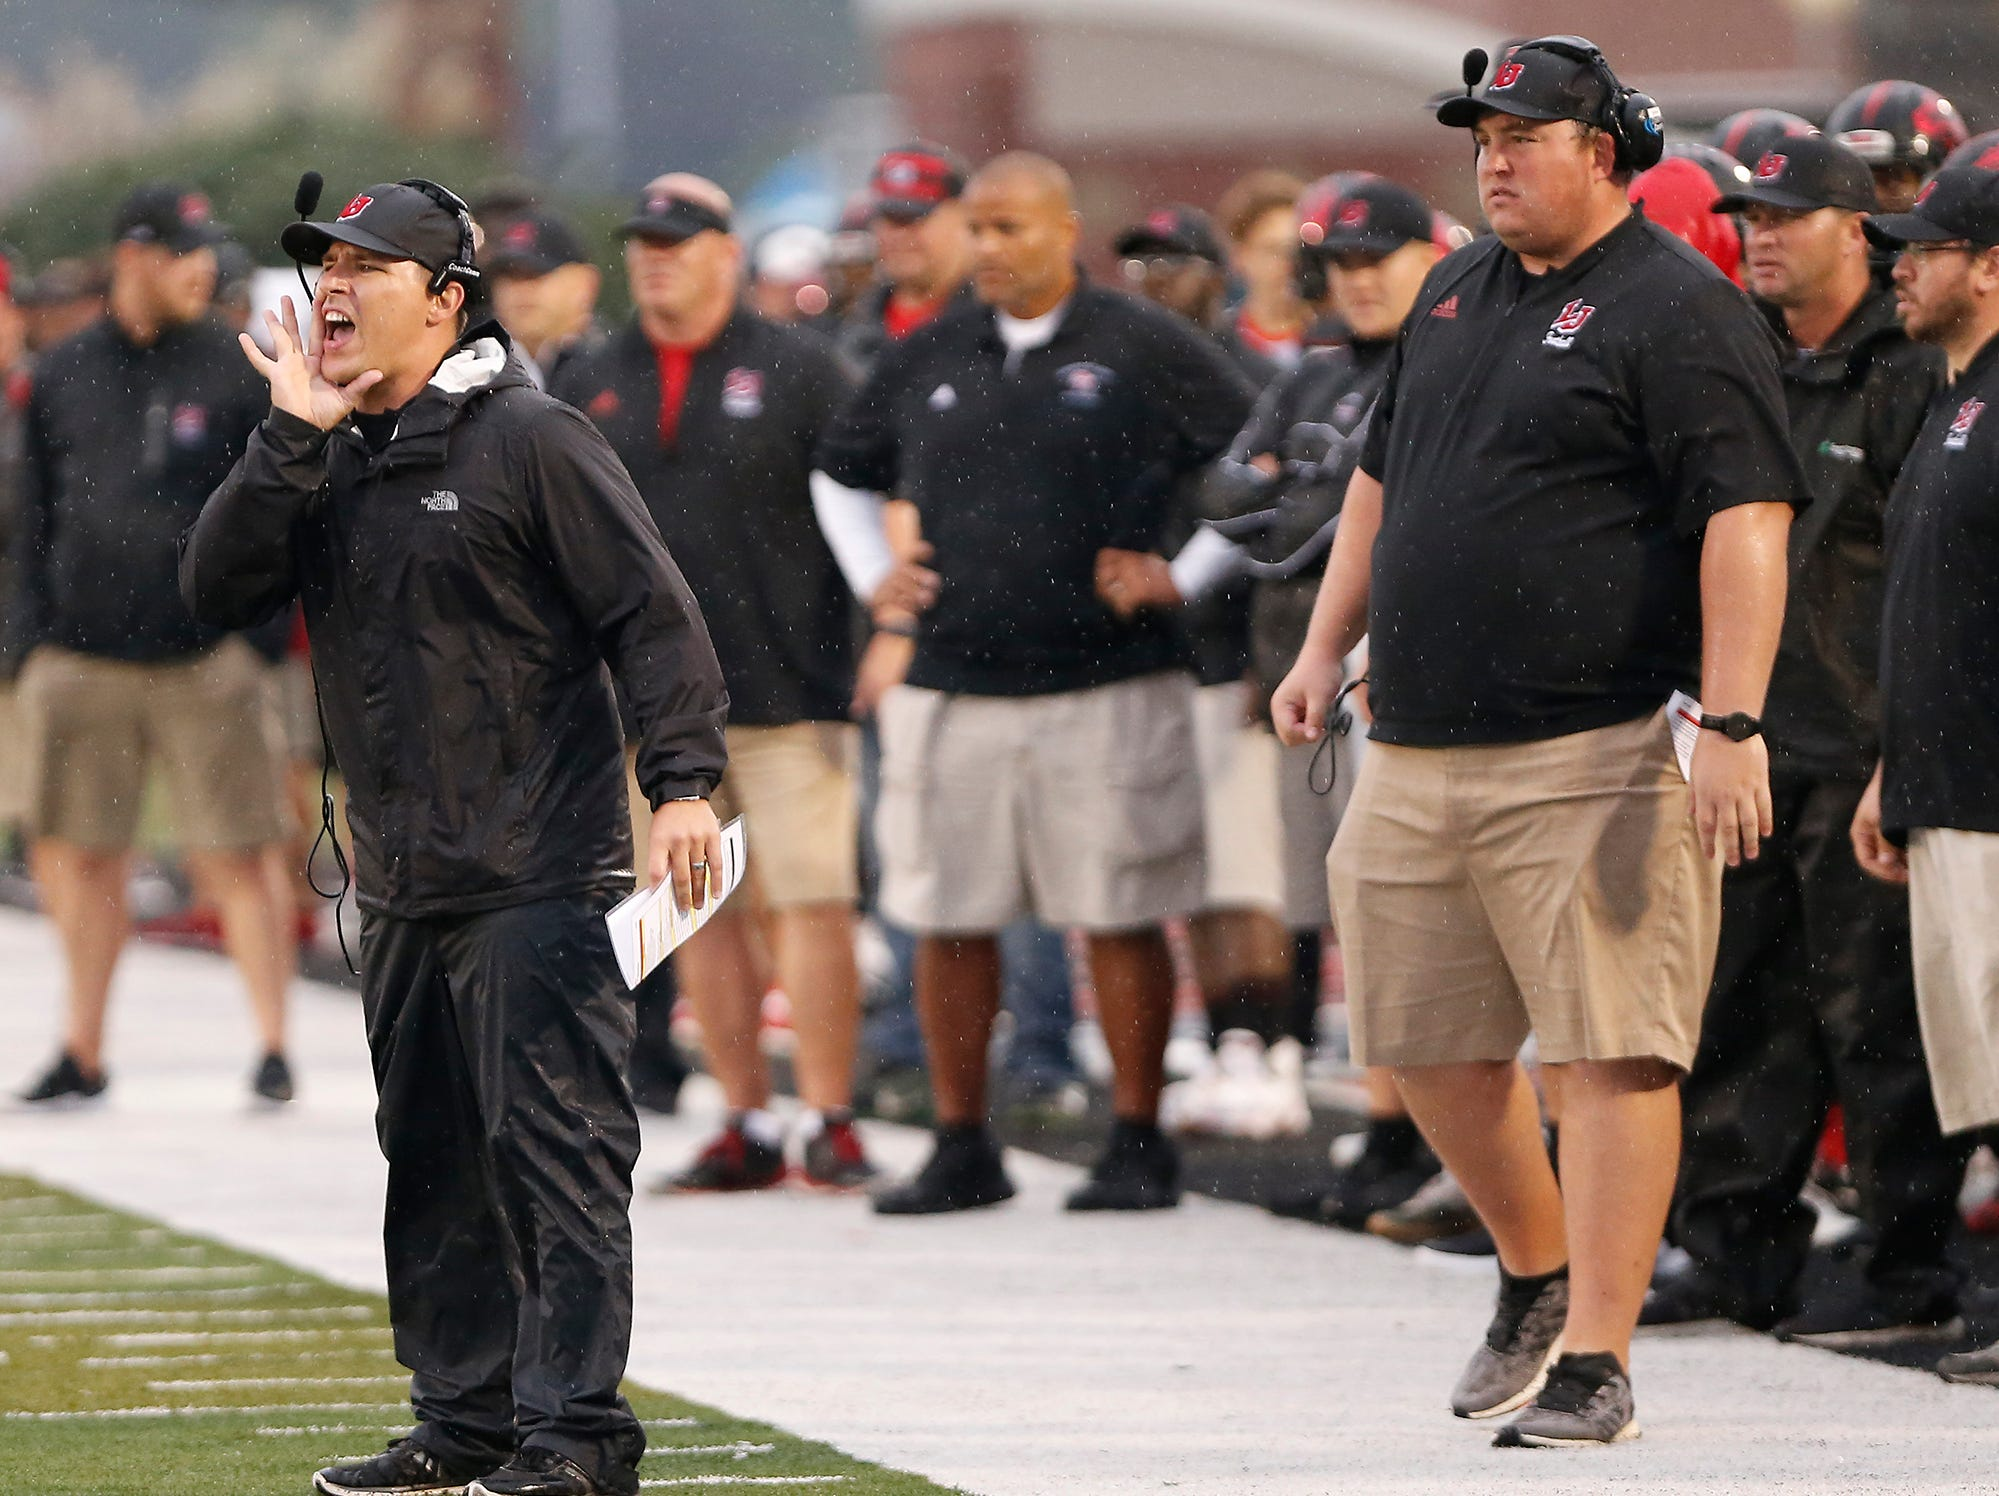 Lafayette Jeff head coach Pat Shanley shouts instructions to the Bronchos as they take the ball deep into Harrison territory in the first quarter Friday, September 7, 2018, at Scheumann Stadium. Jeff defeated Harrison 31-14.